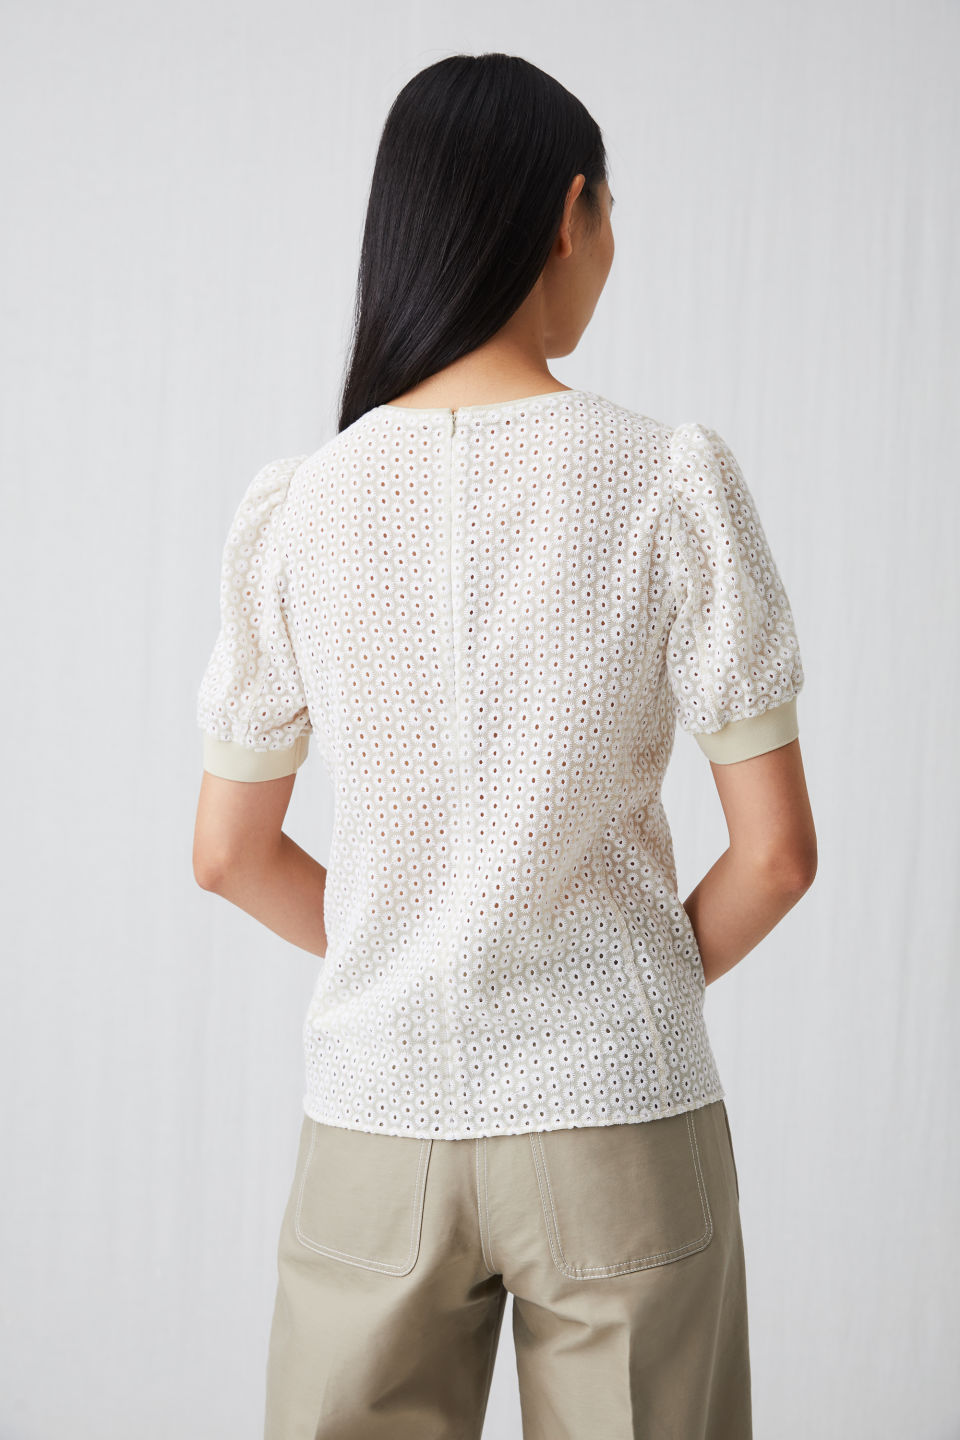 arket-embroidered-top-back-view